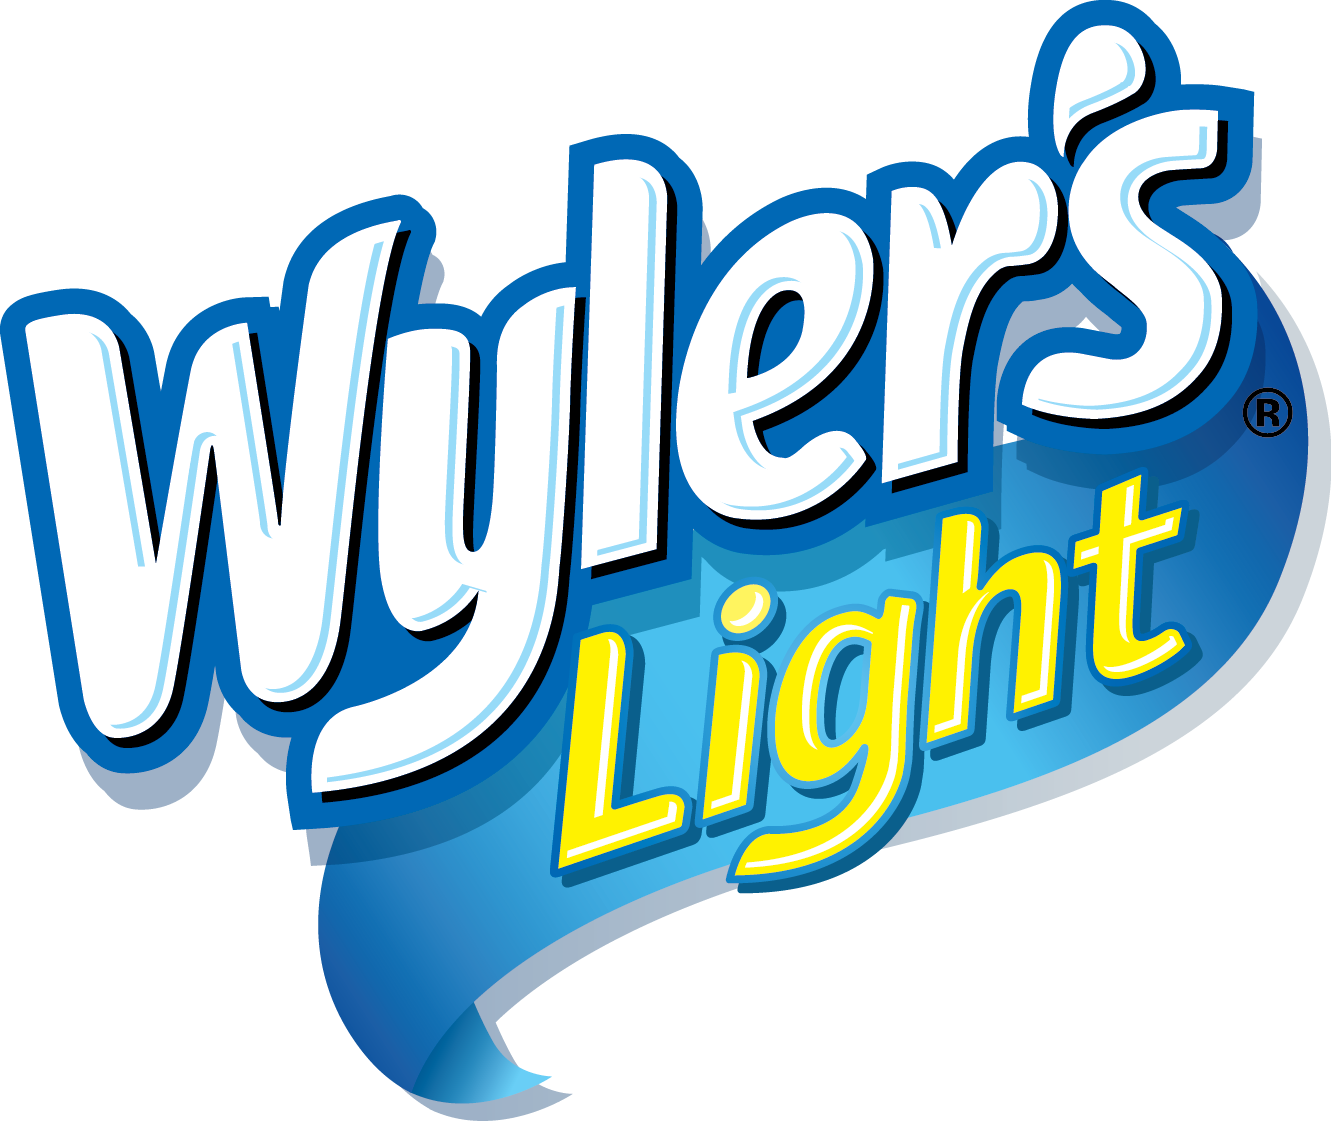 Wylers